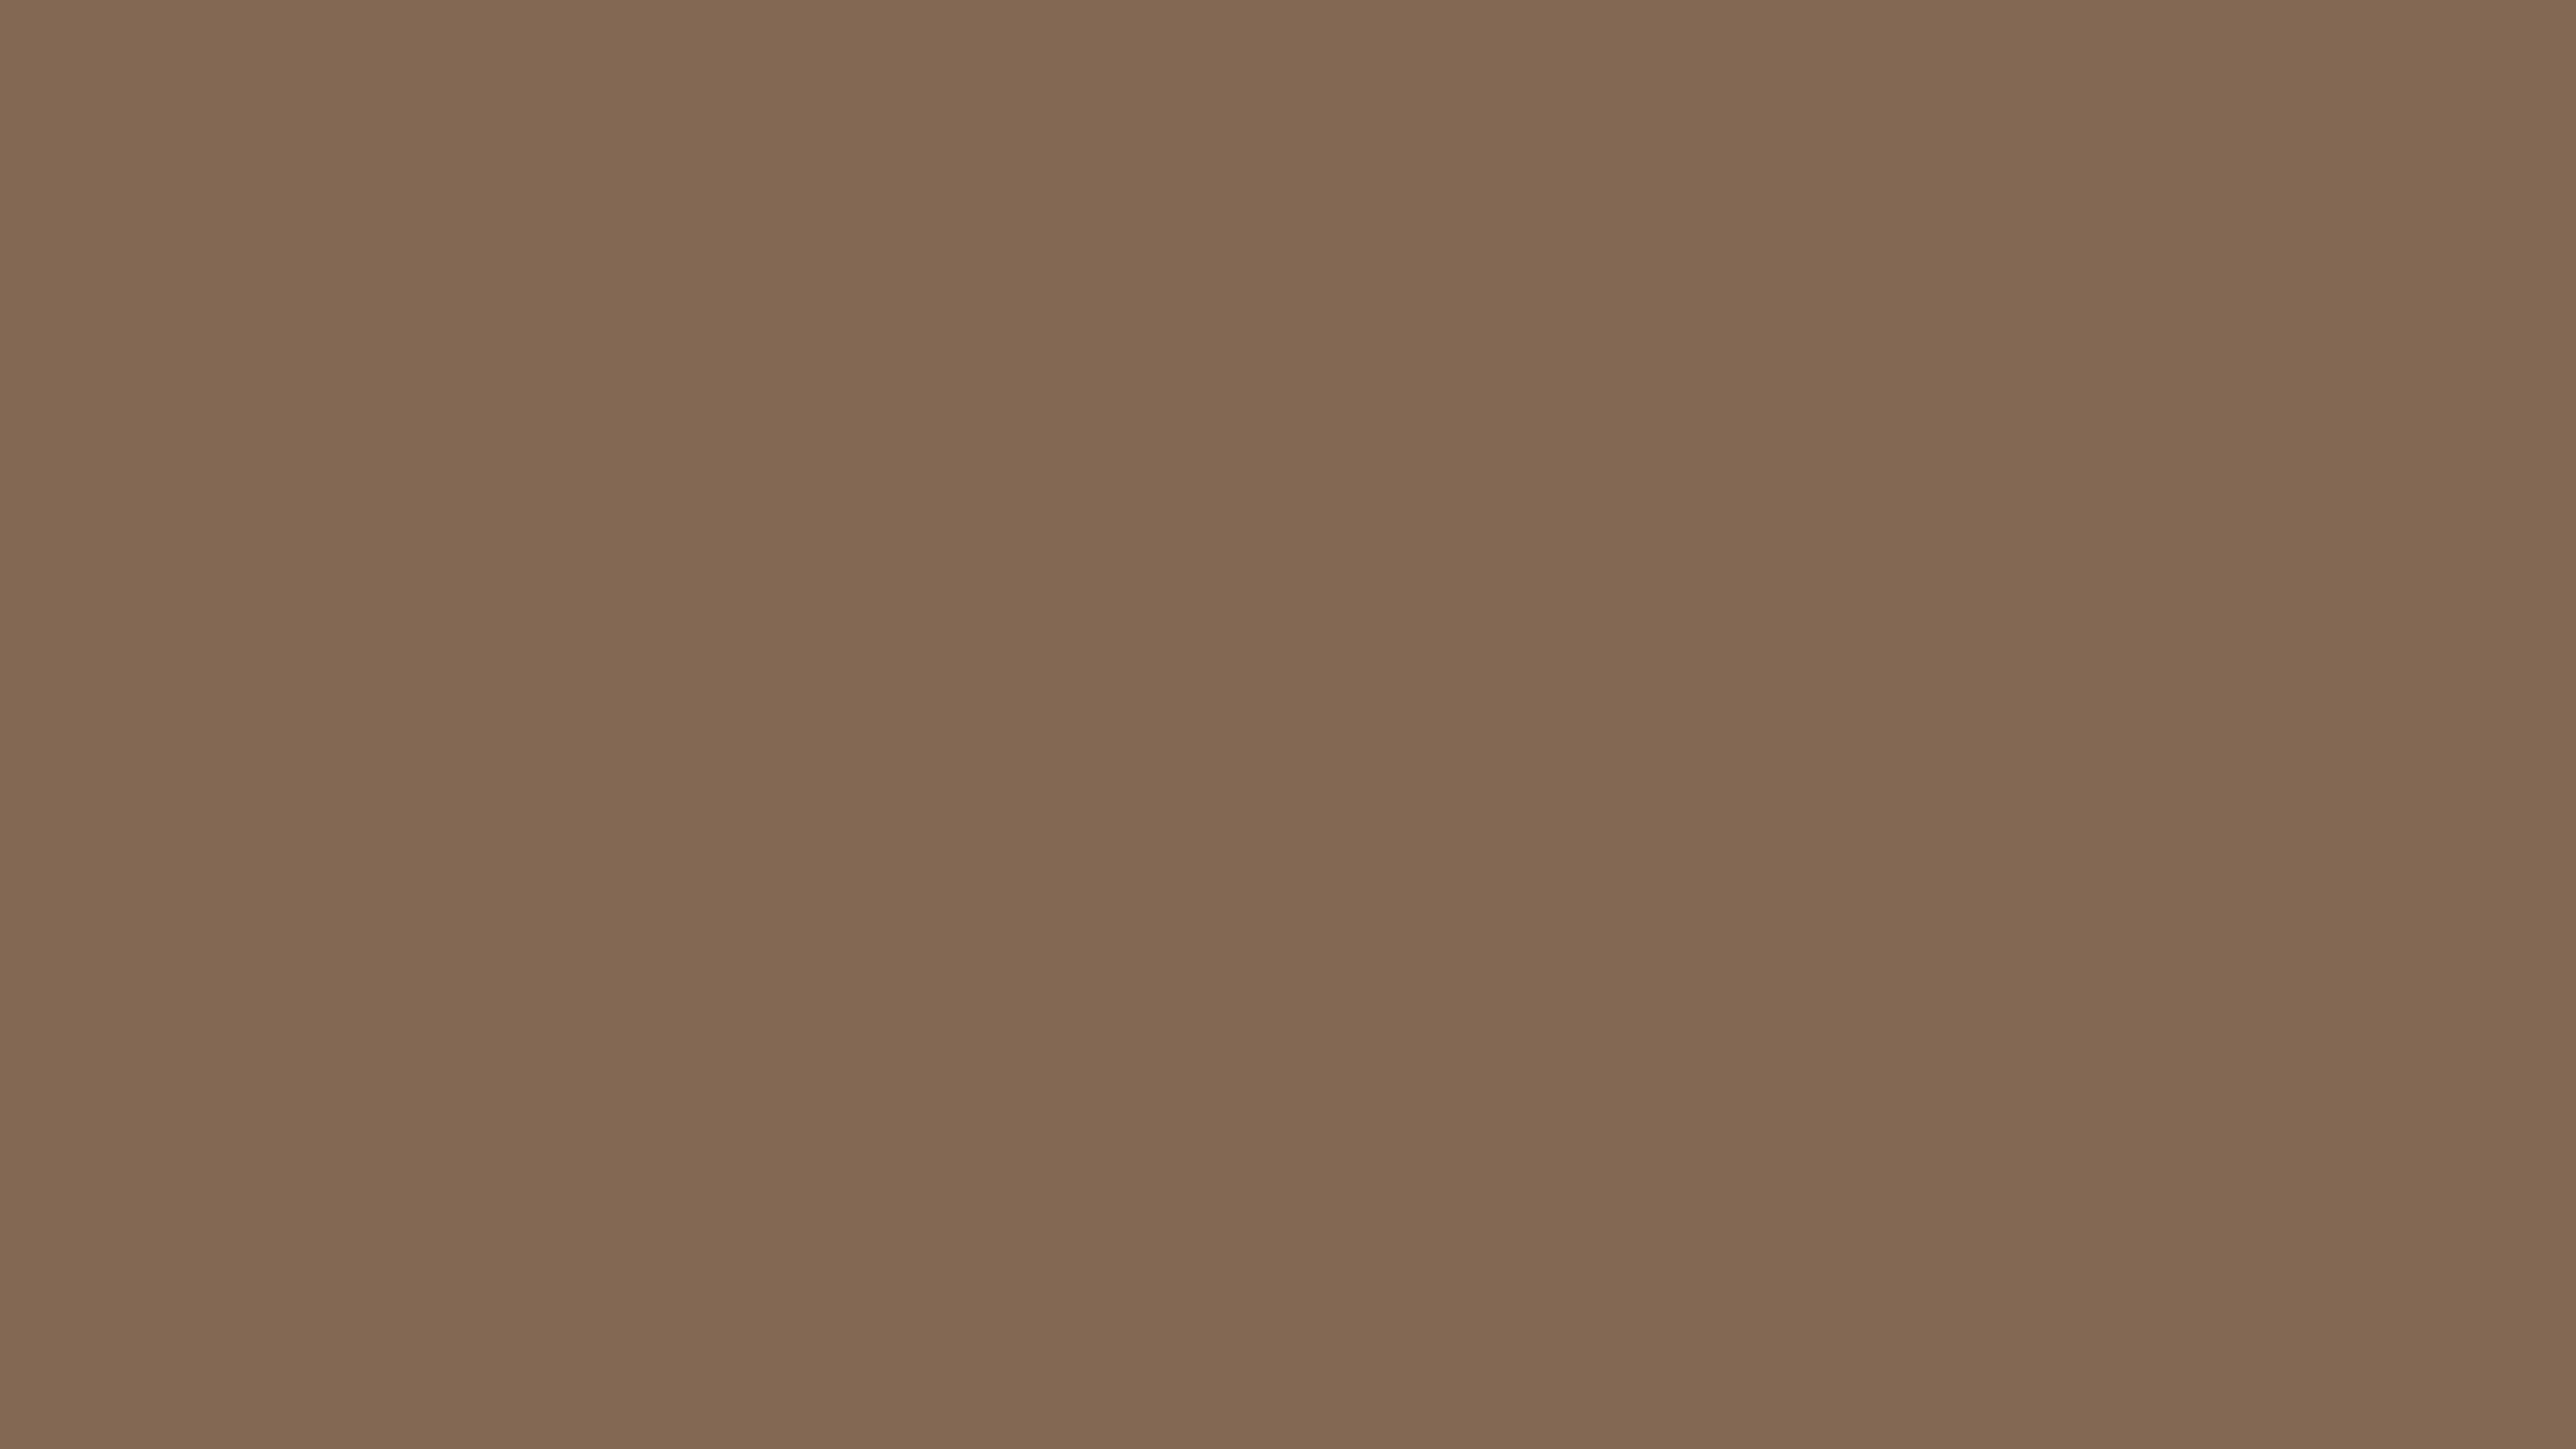 3840x2160 Pastel Brown Solid Color Background